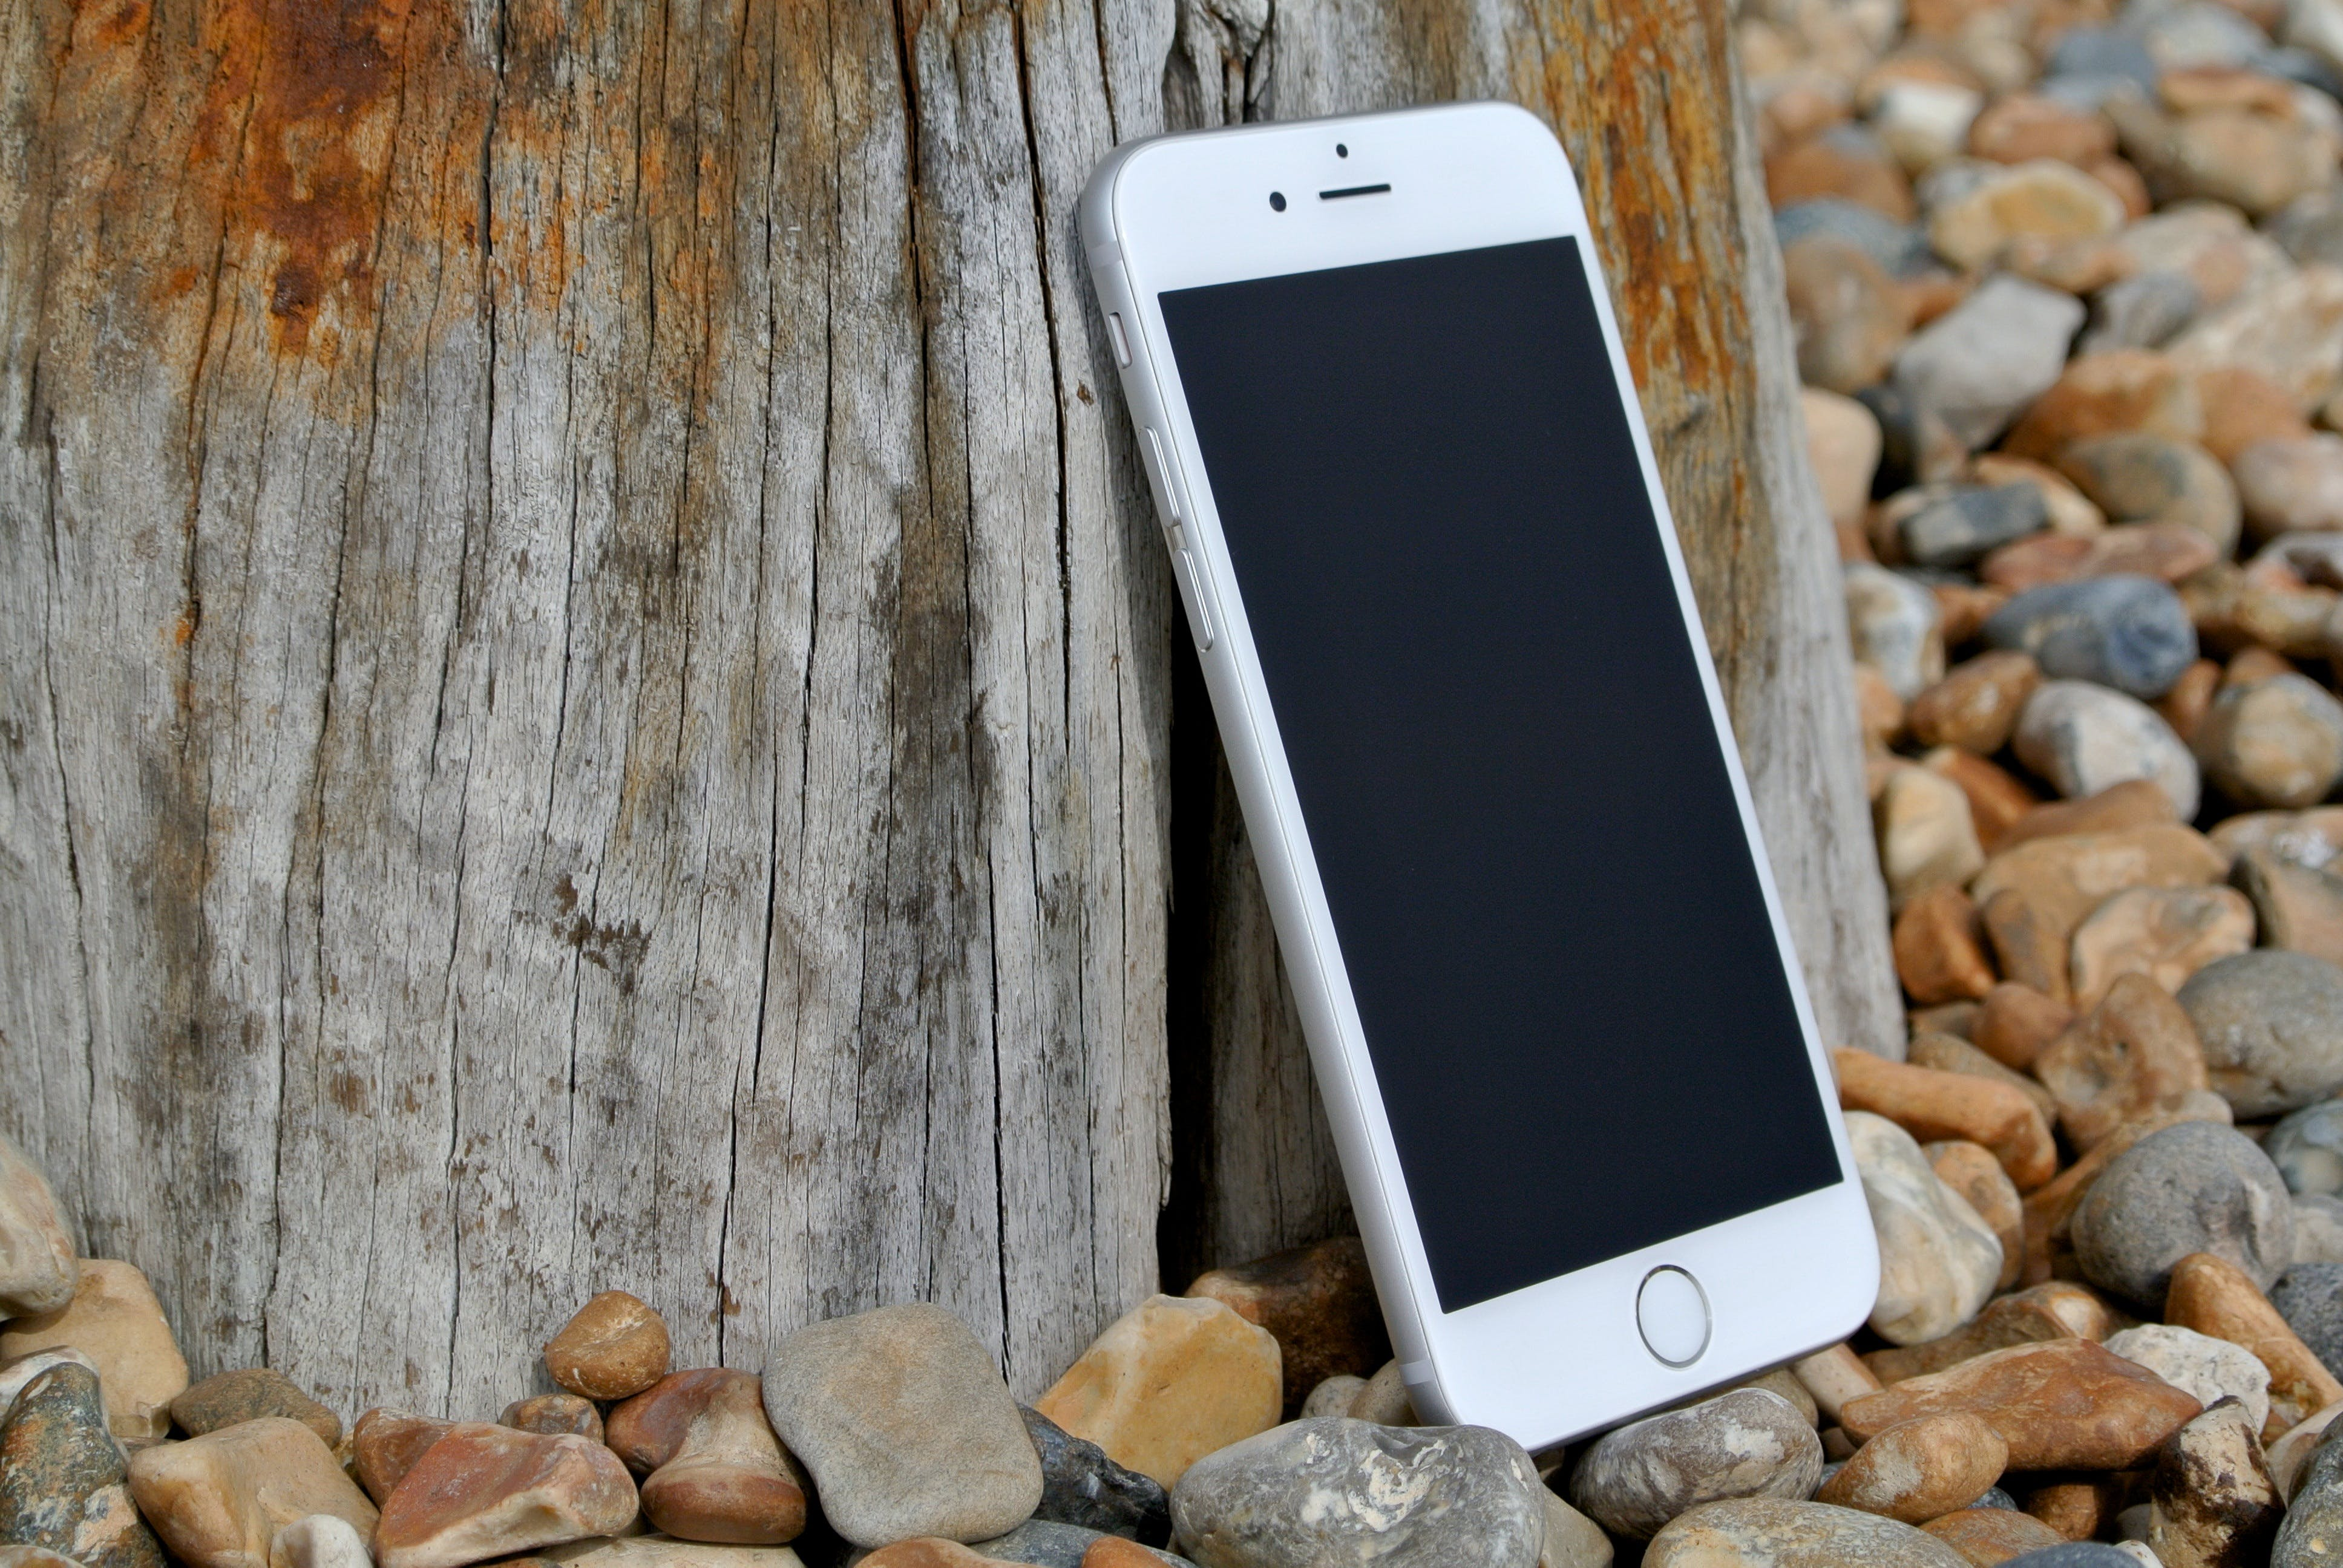 Silver Iphone 6 on Gray and Brown Stone